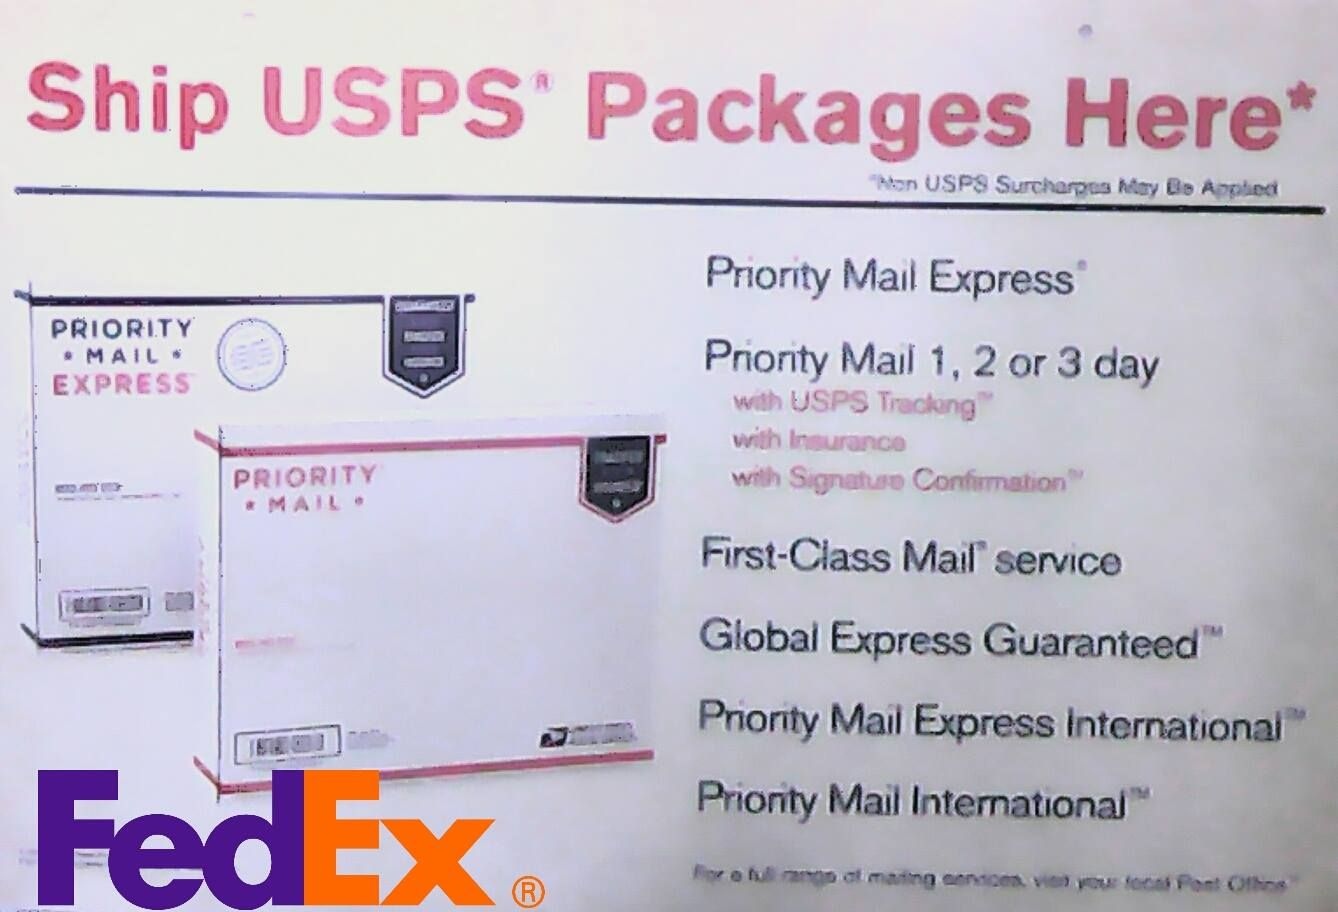 Sos Postal Here To Advertise Of Our Shipping Services You Can